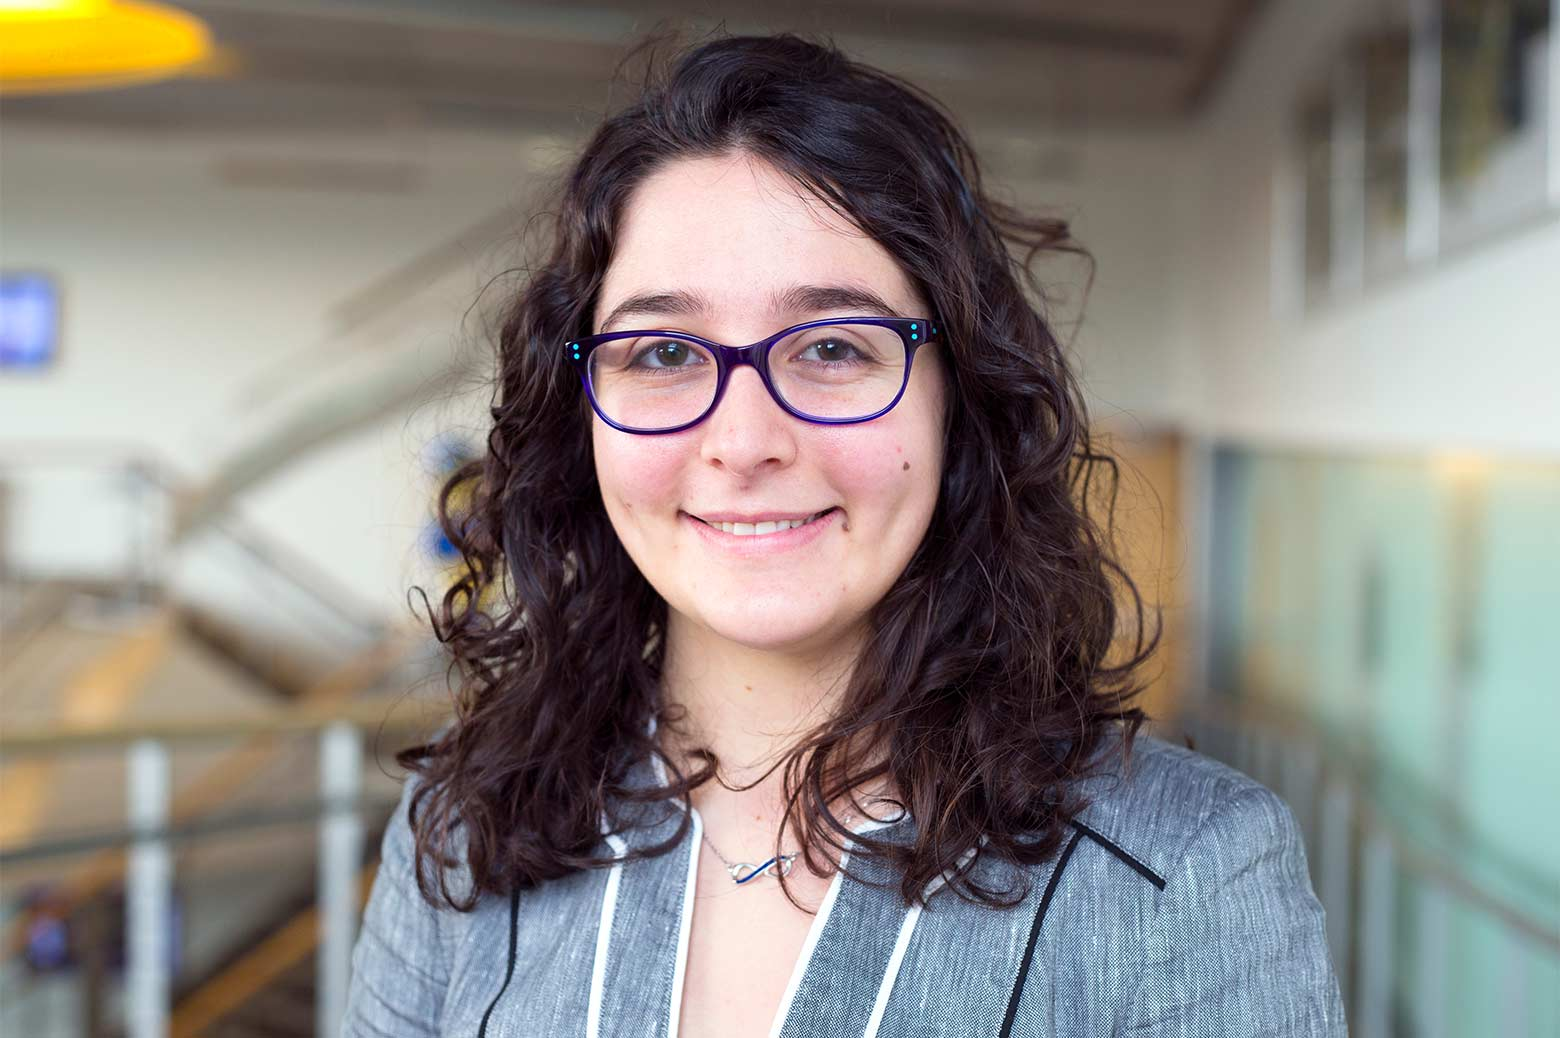 Portrait of Ariel Sandberg. Photo: Akhil Kantipuly, Michigan Engineering.